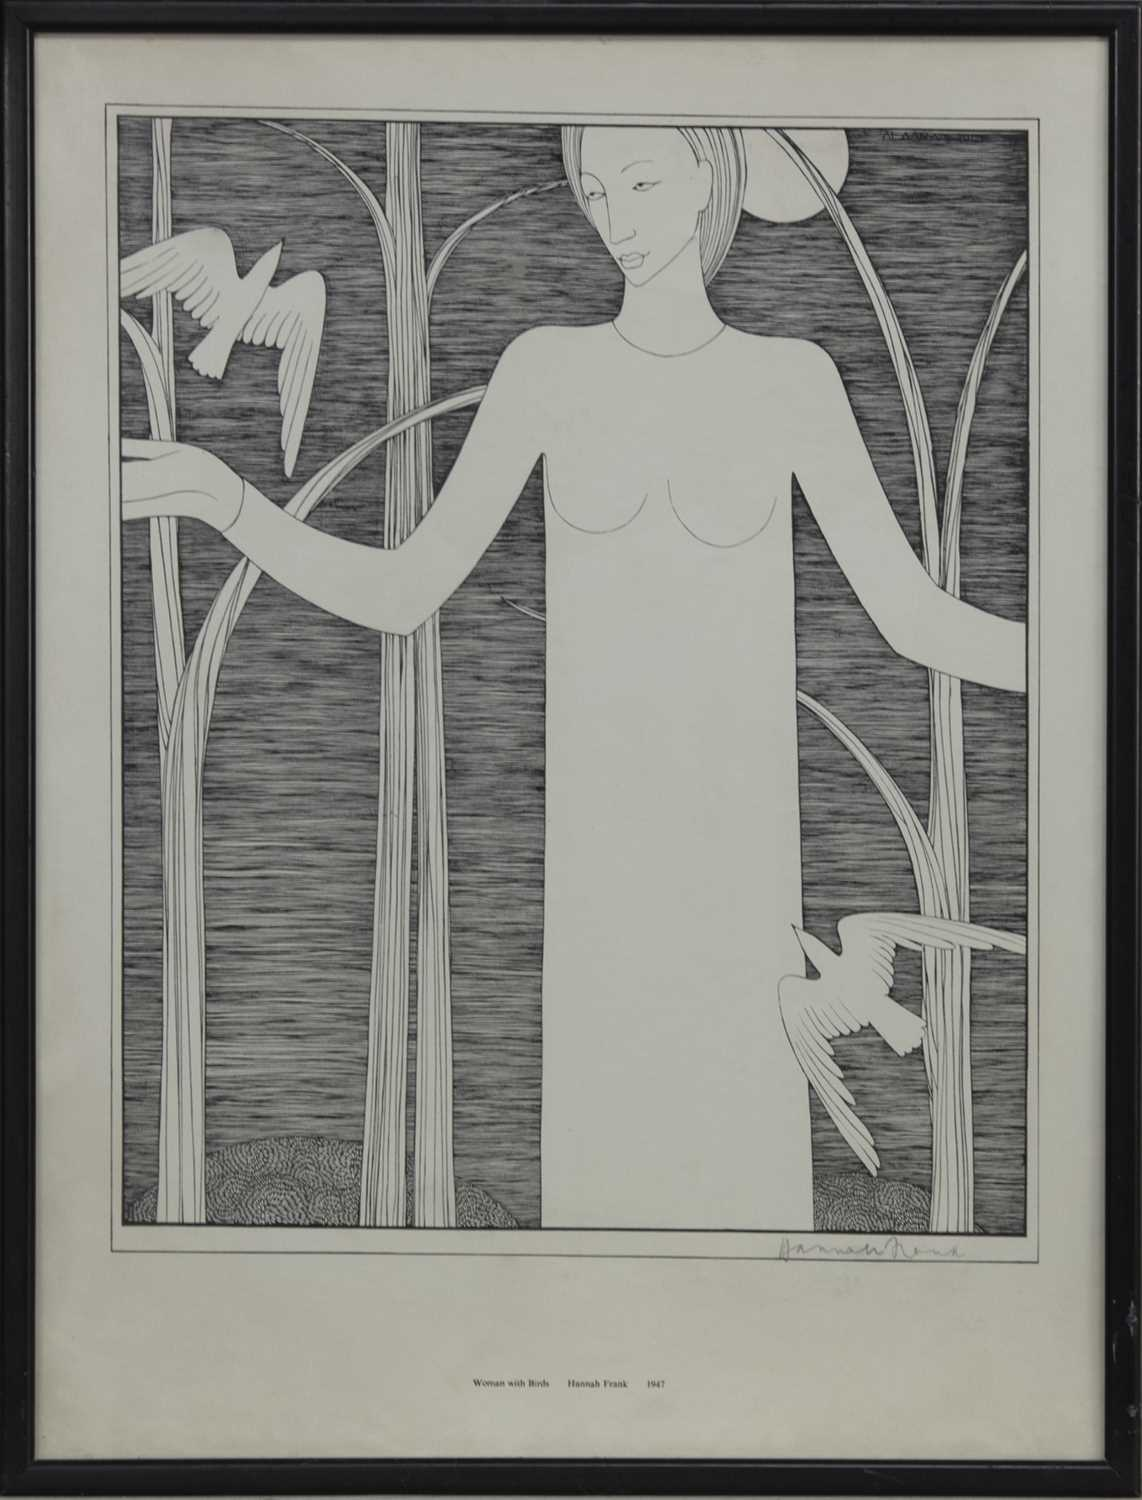 Lot 578 - WOMAN WITH BIRDS, A LITHOGRAPH BY HANNAH FRANK